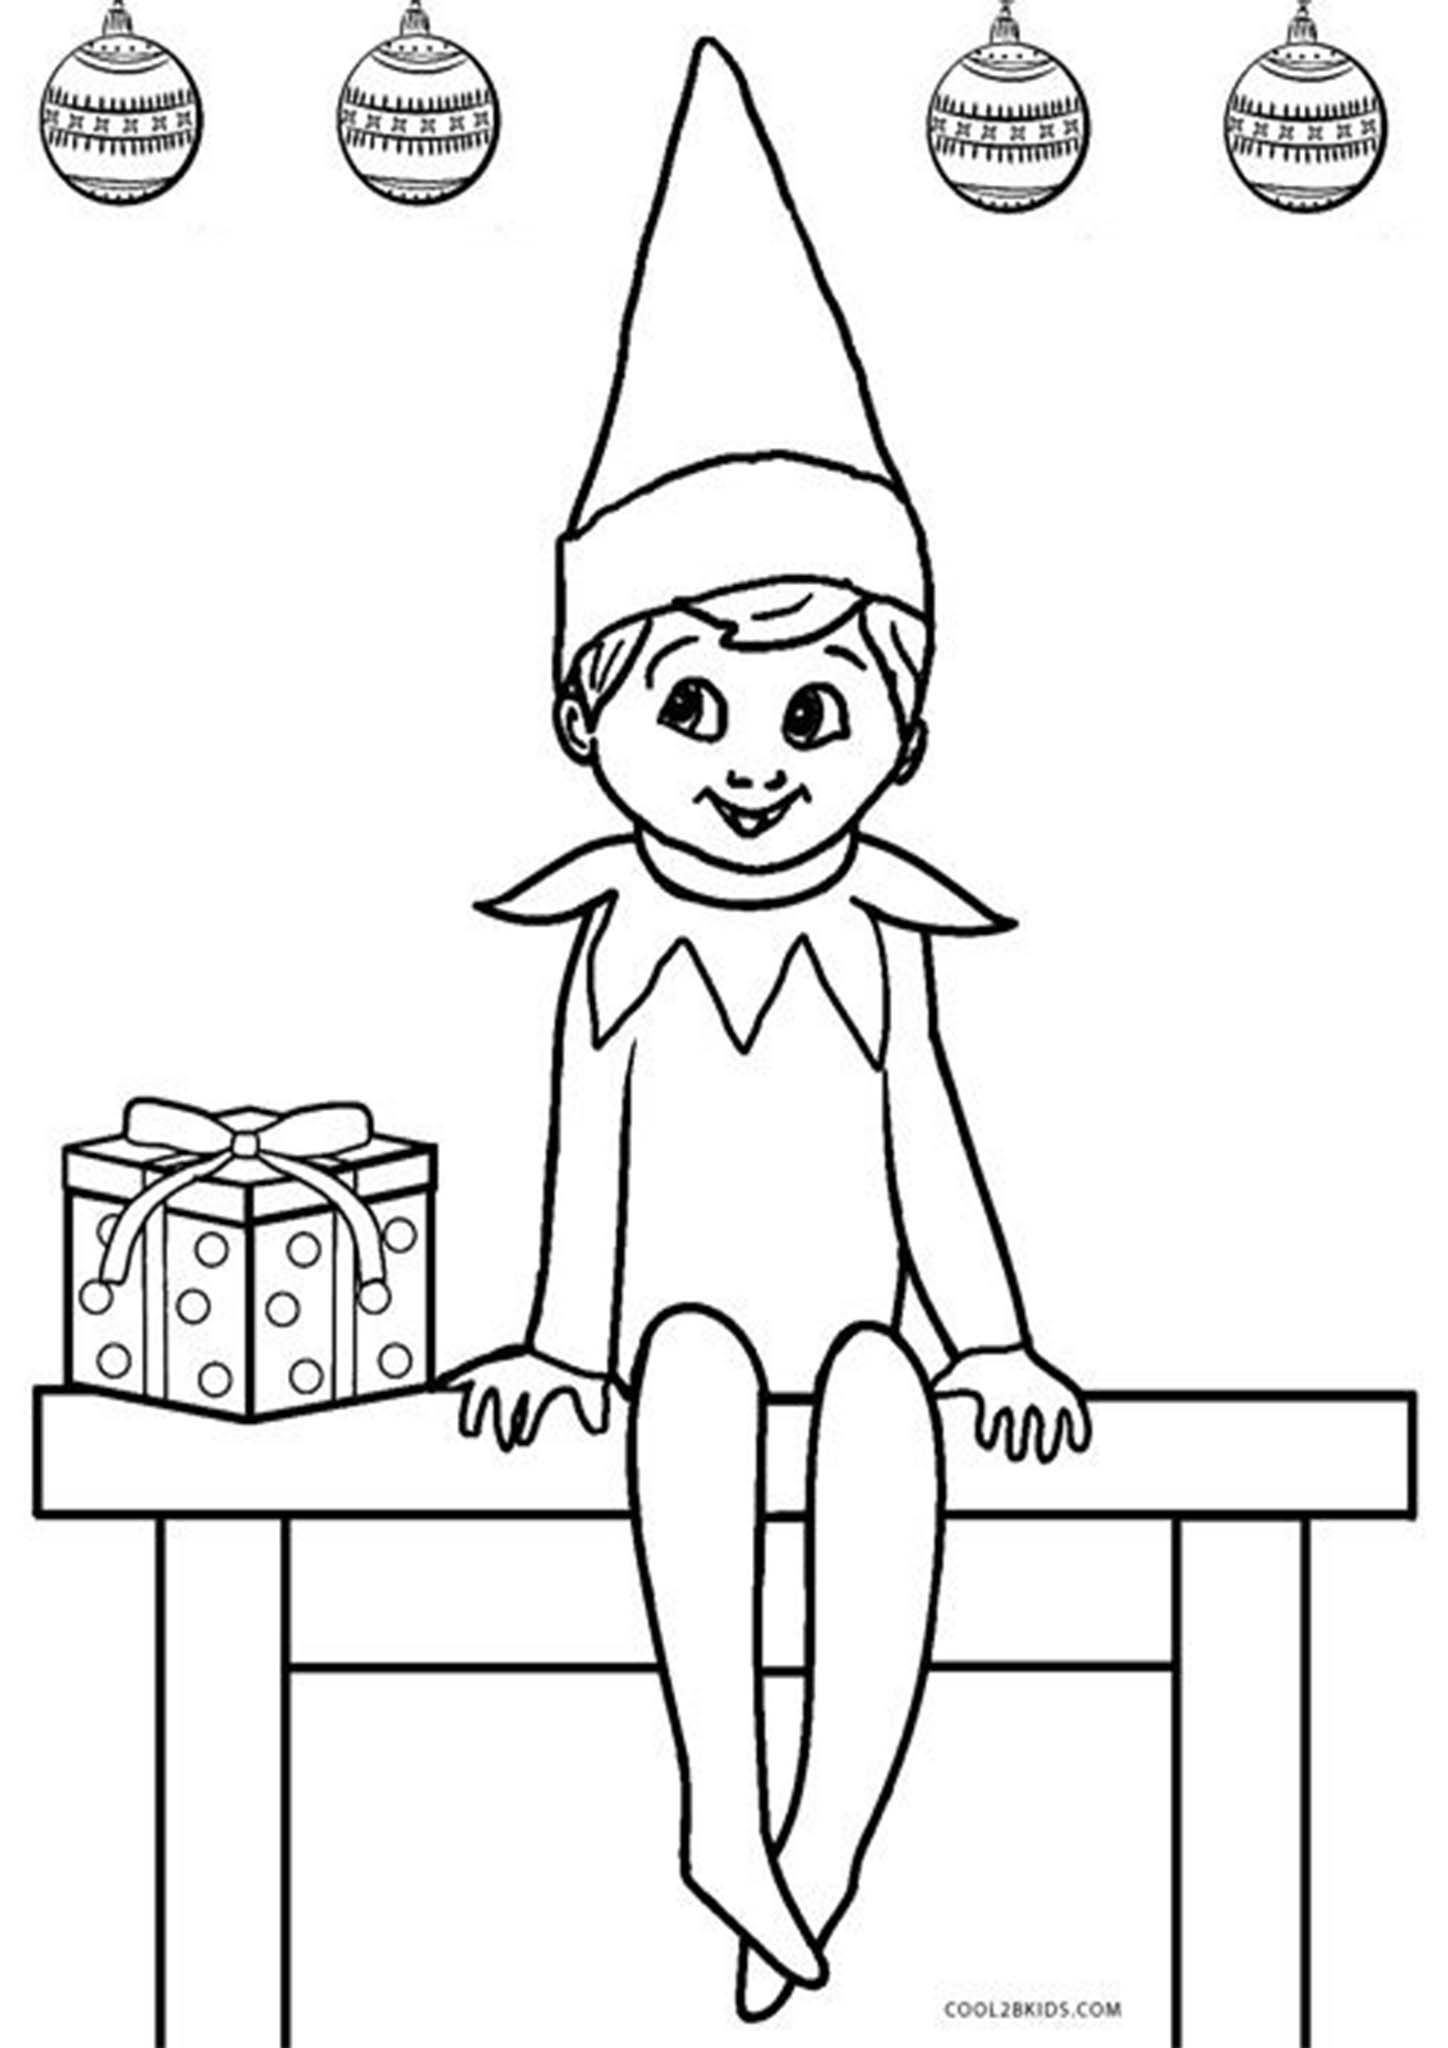 Free Printable Elf on The Shelf Coloring Pages  Printable